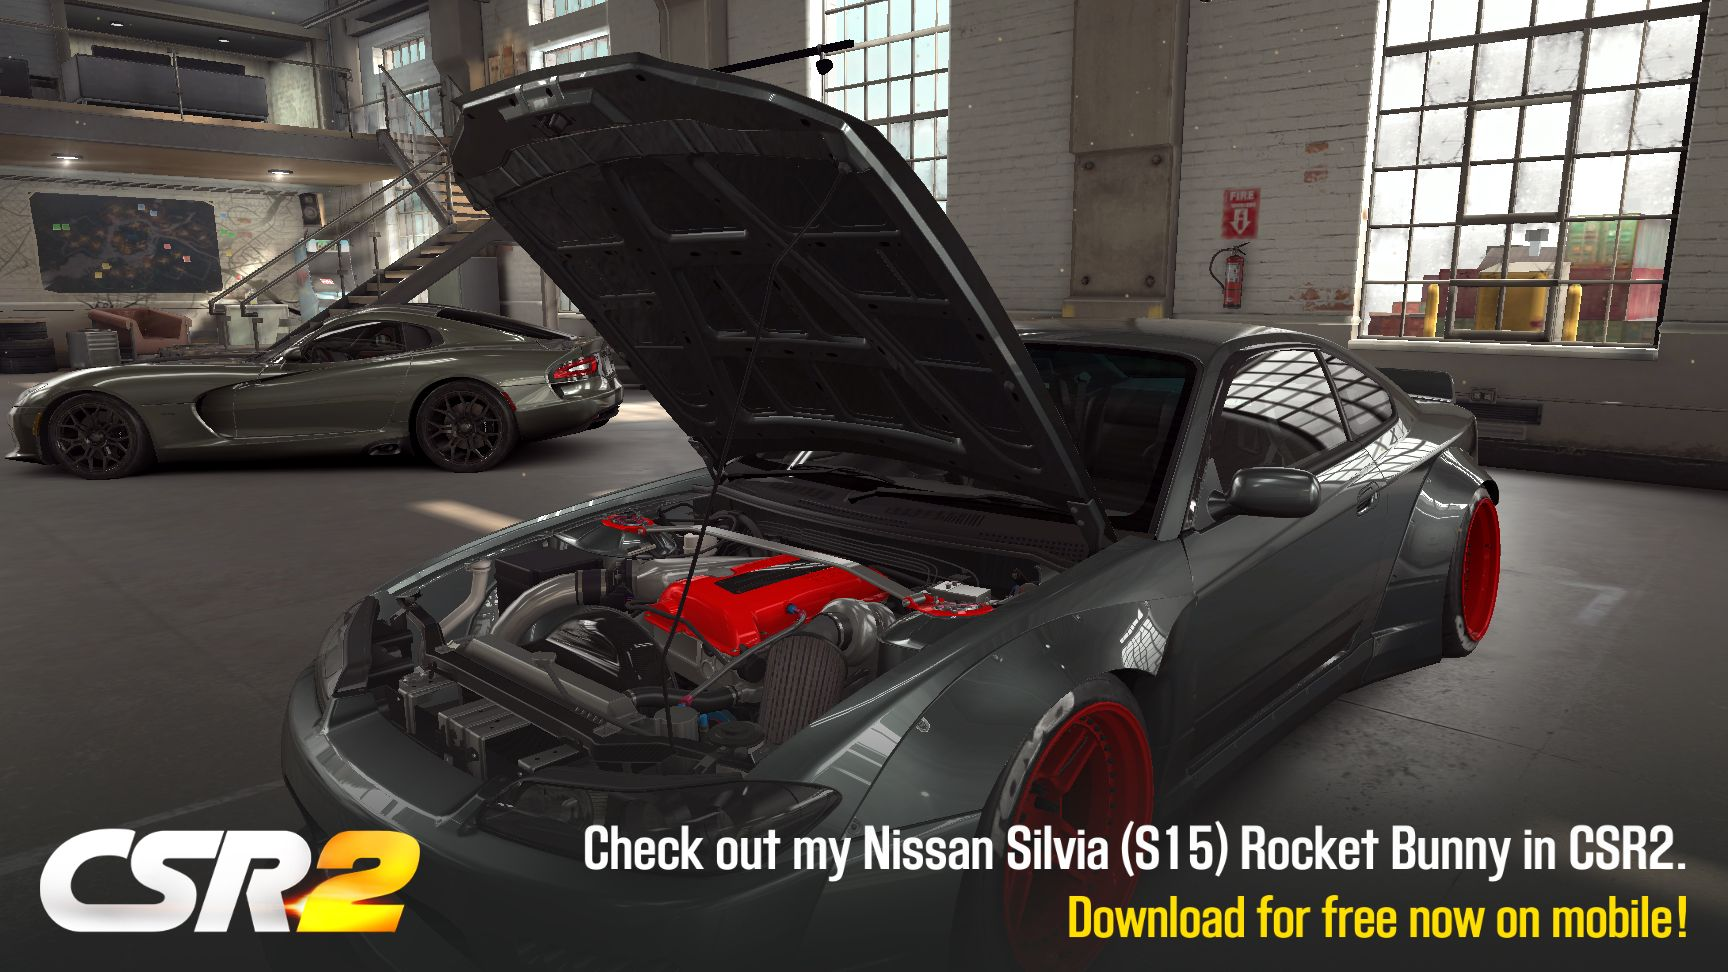 Silvia Mobili ~ Check out my nissan silvia s15 rocket bunny in csr2. http